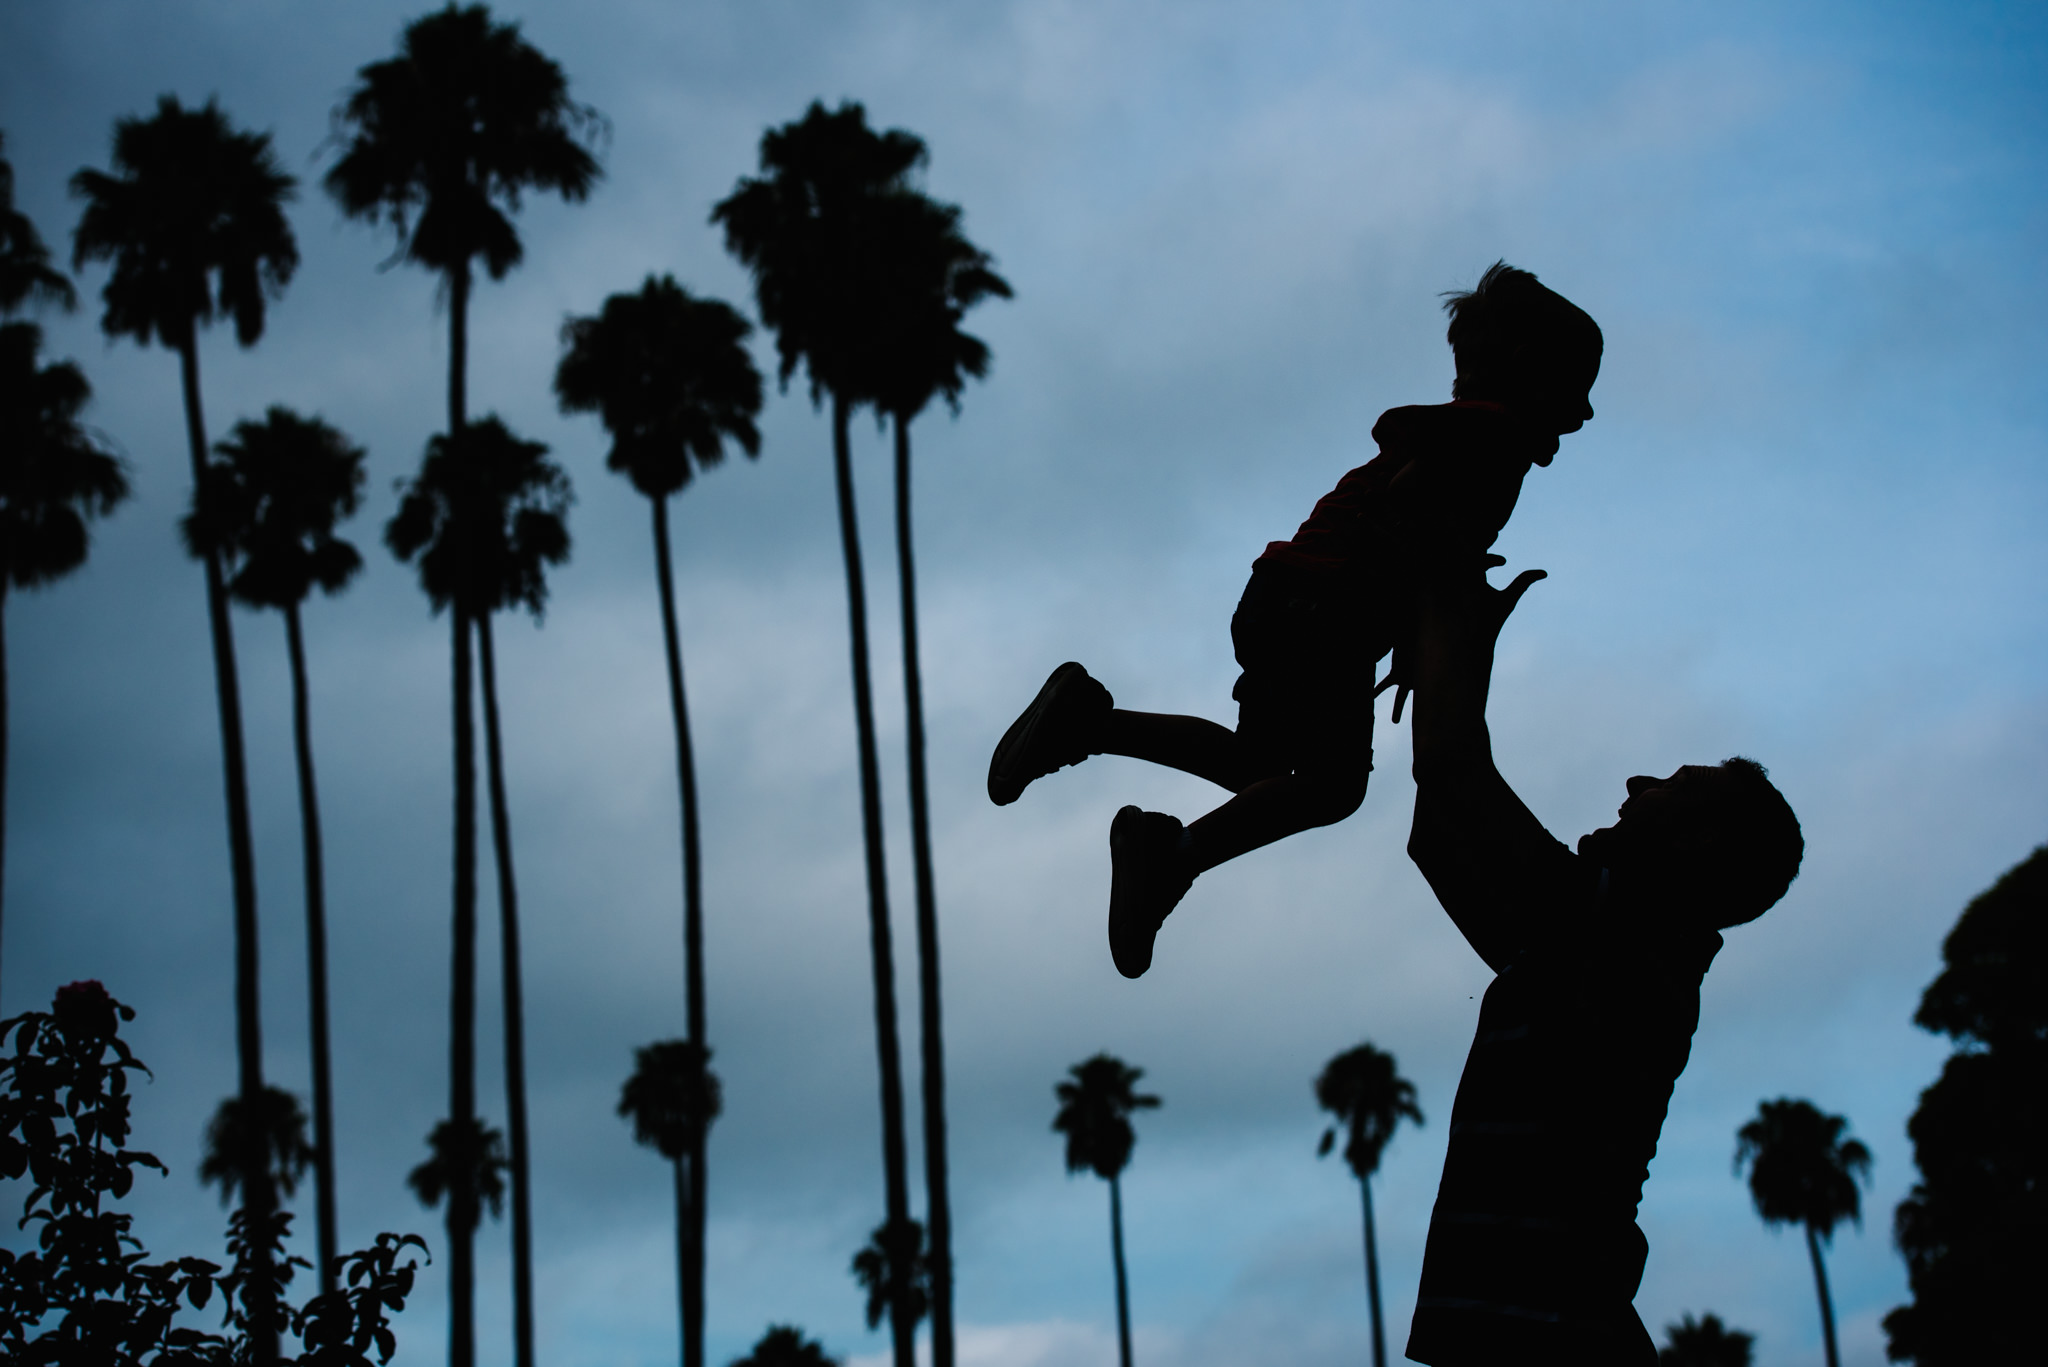 Silhouette of dad son palm trees